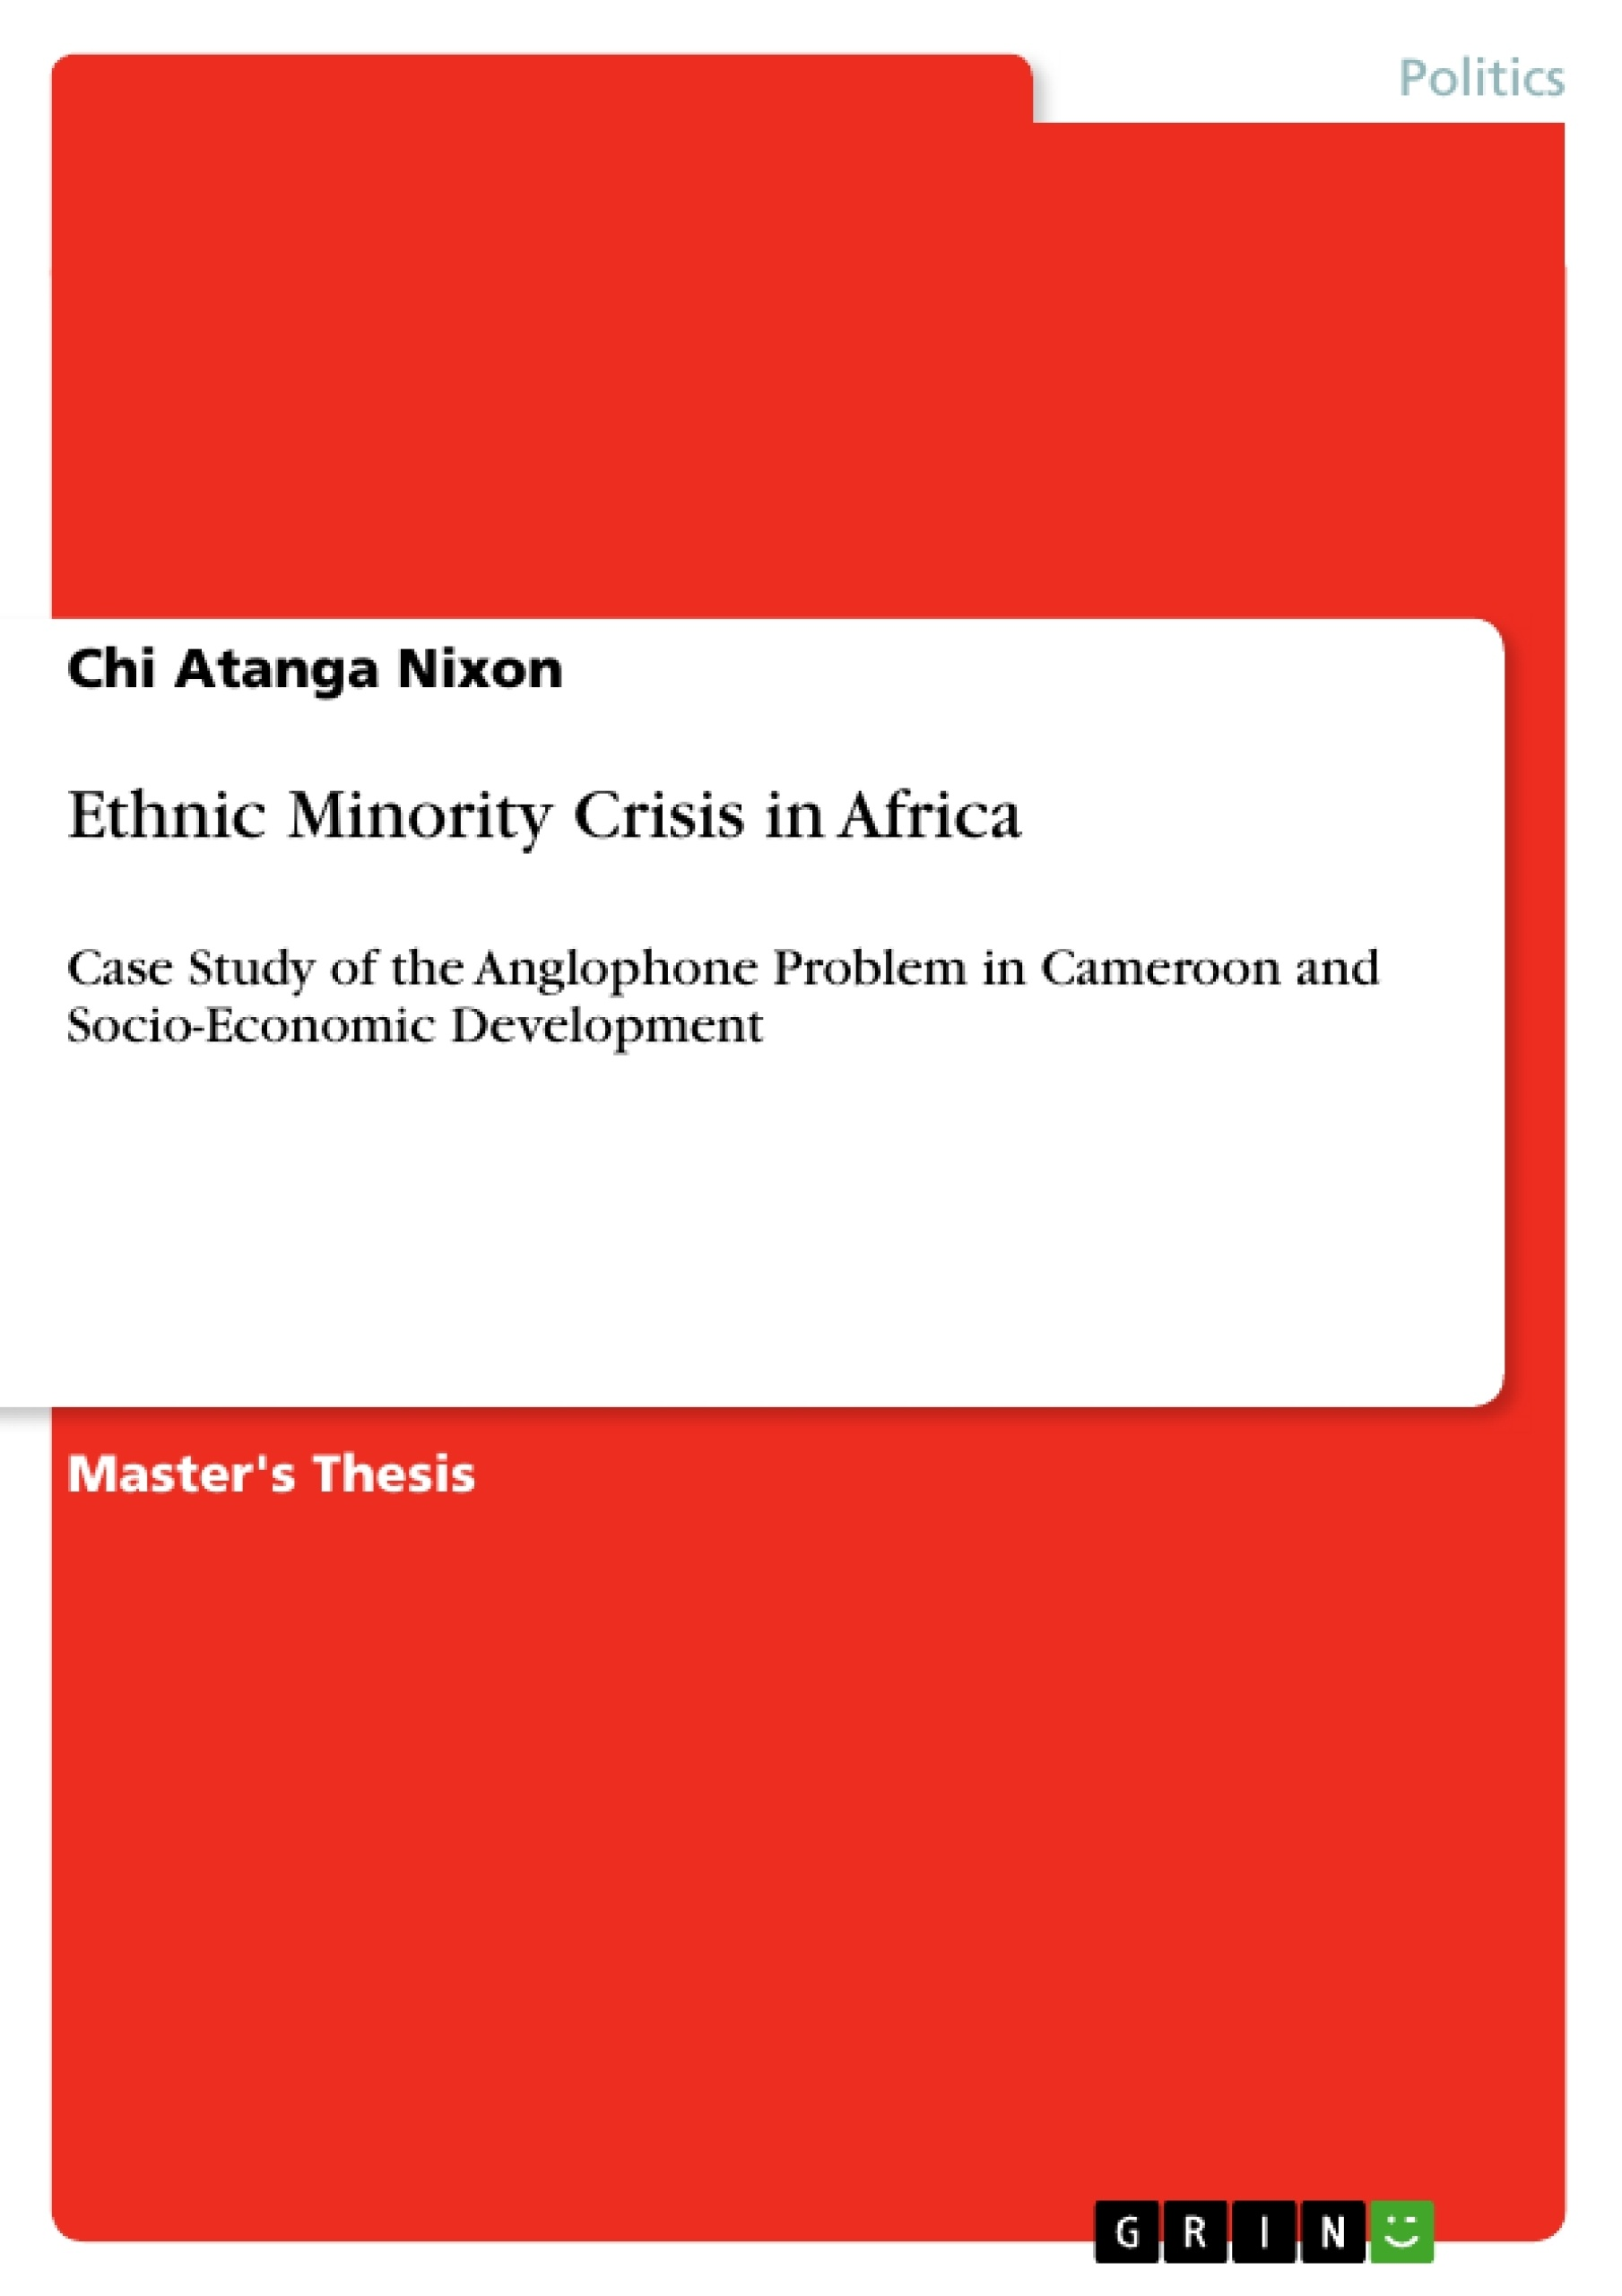 Ethnic Minority Crisis In Africa  Publish Your Master's Thesis, Bachelor's  Thesis, Essay Or Term Paper